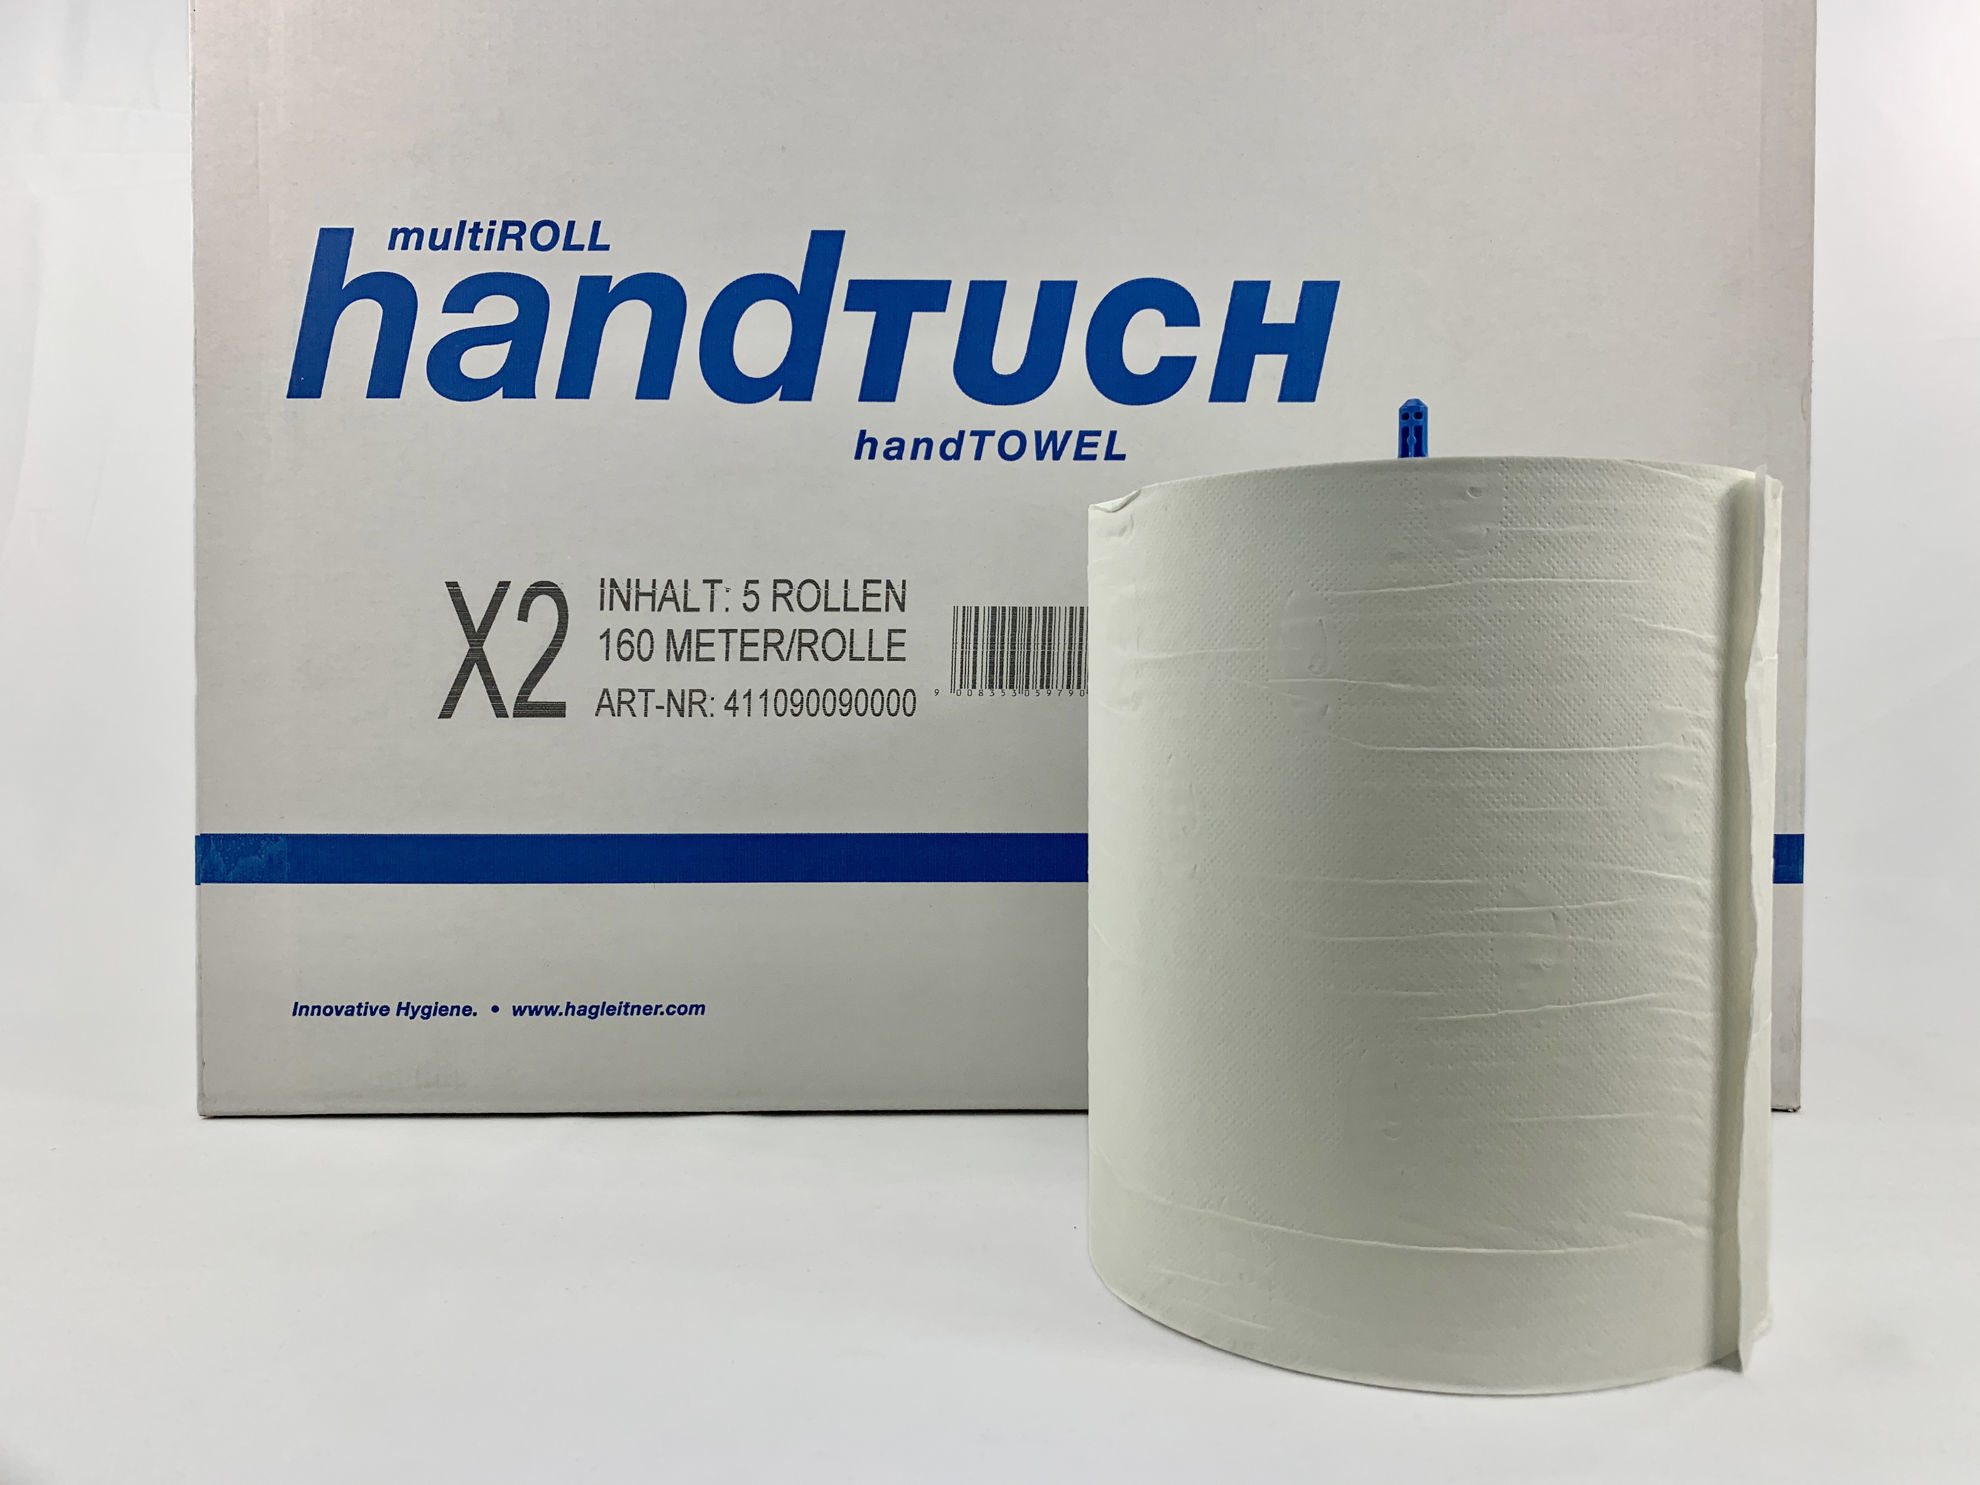 Picture of Xibu Paper Towel Roll X2 (160m, 2ply, Pack of 5)